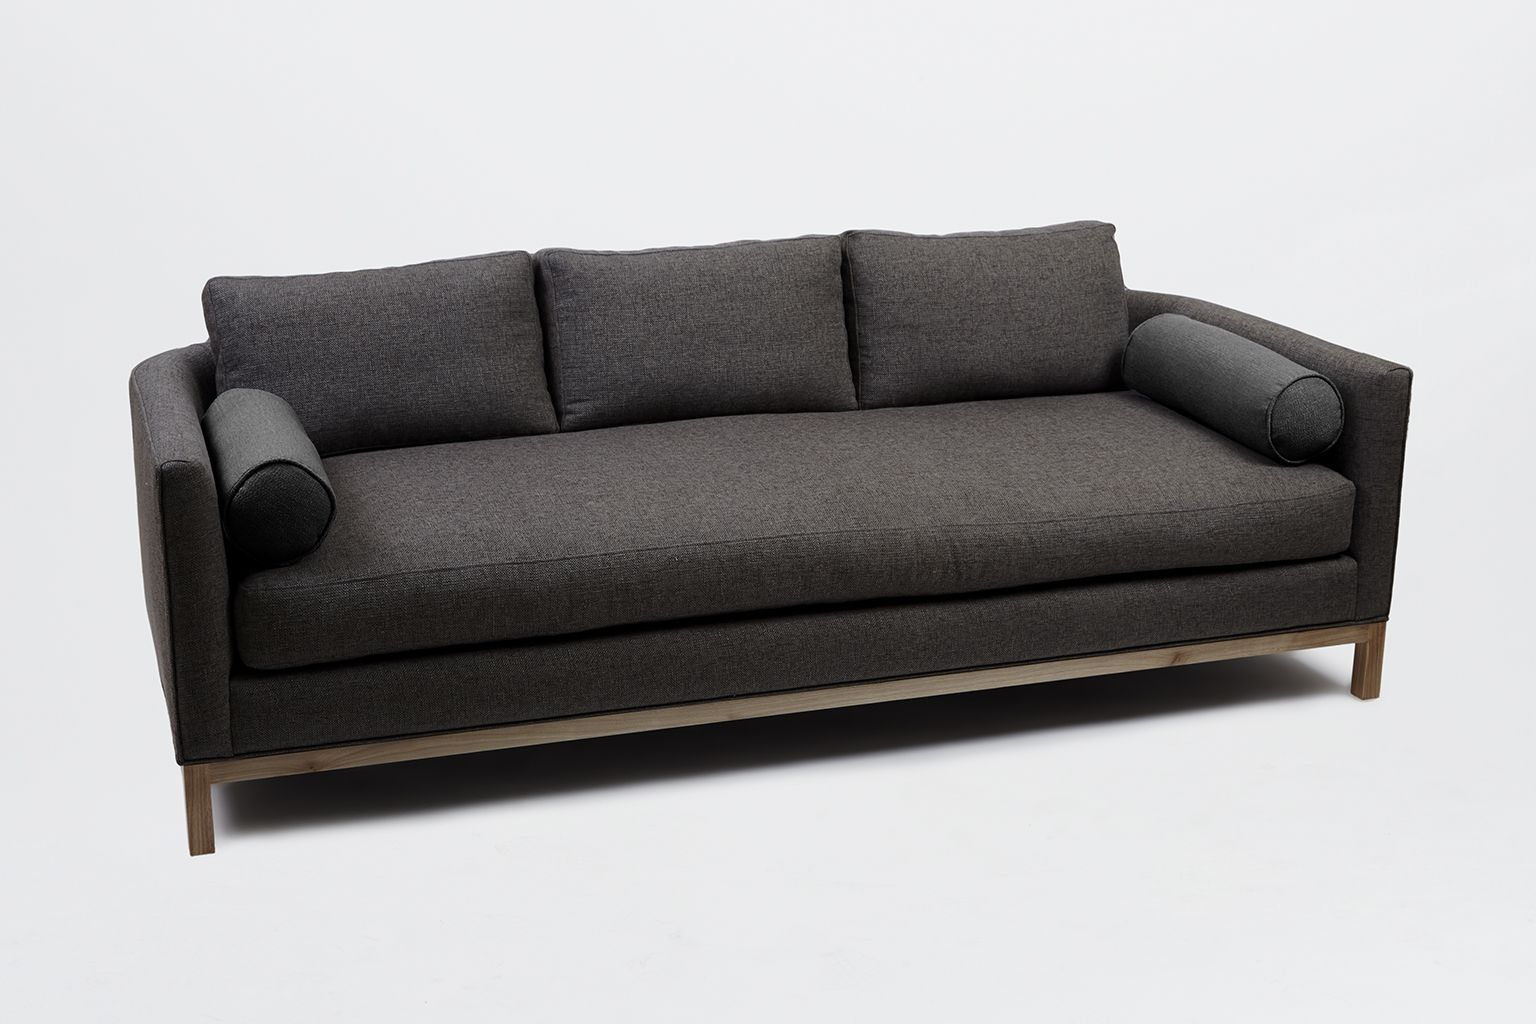 Charmant Curved Back Sofa | Lawson Fenning  CAN CREATE SECTIONAL